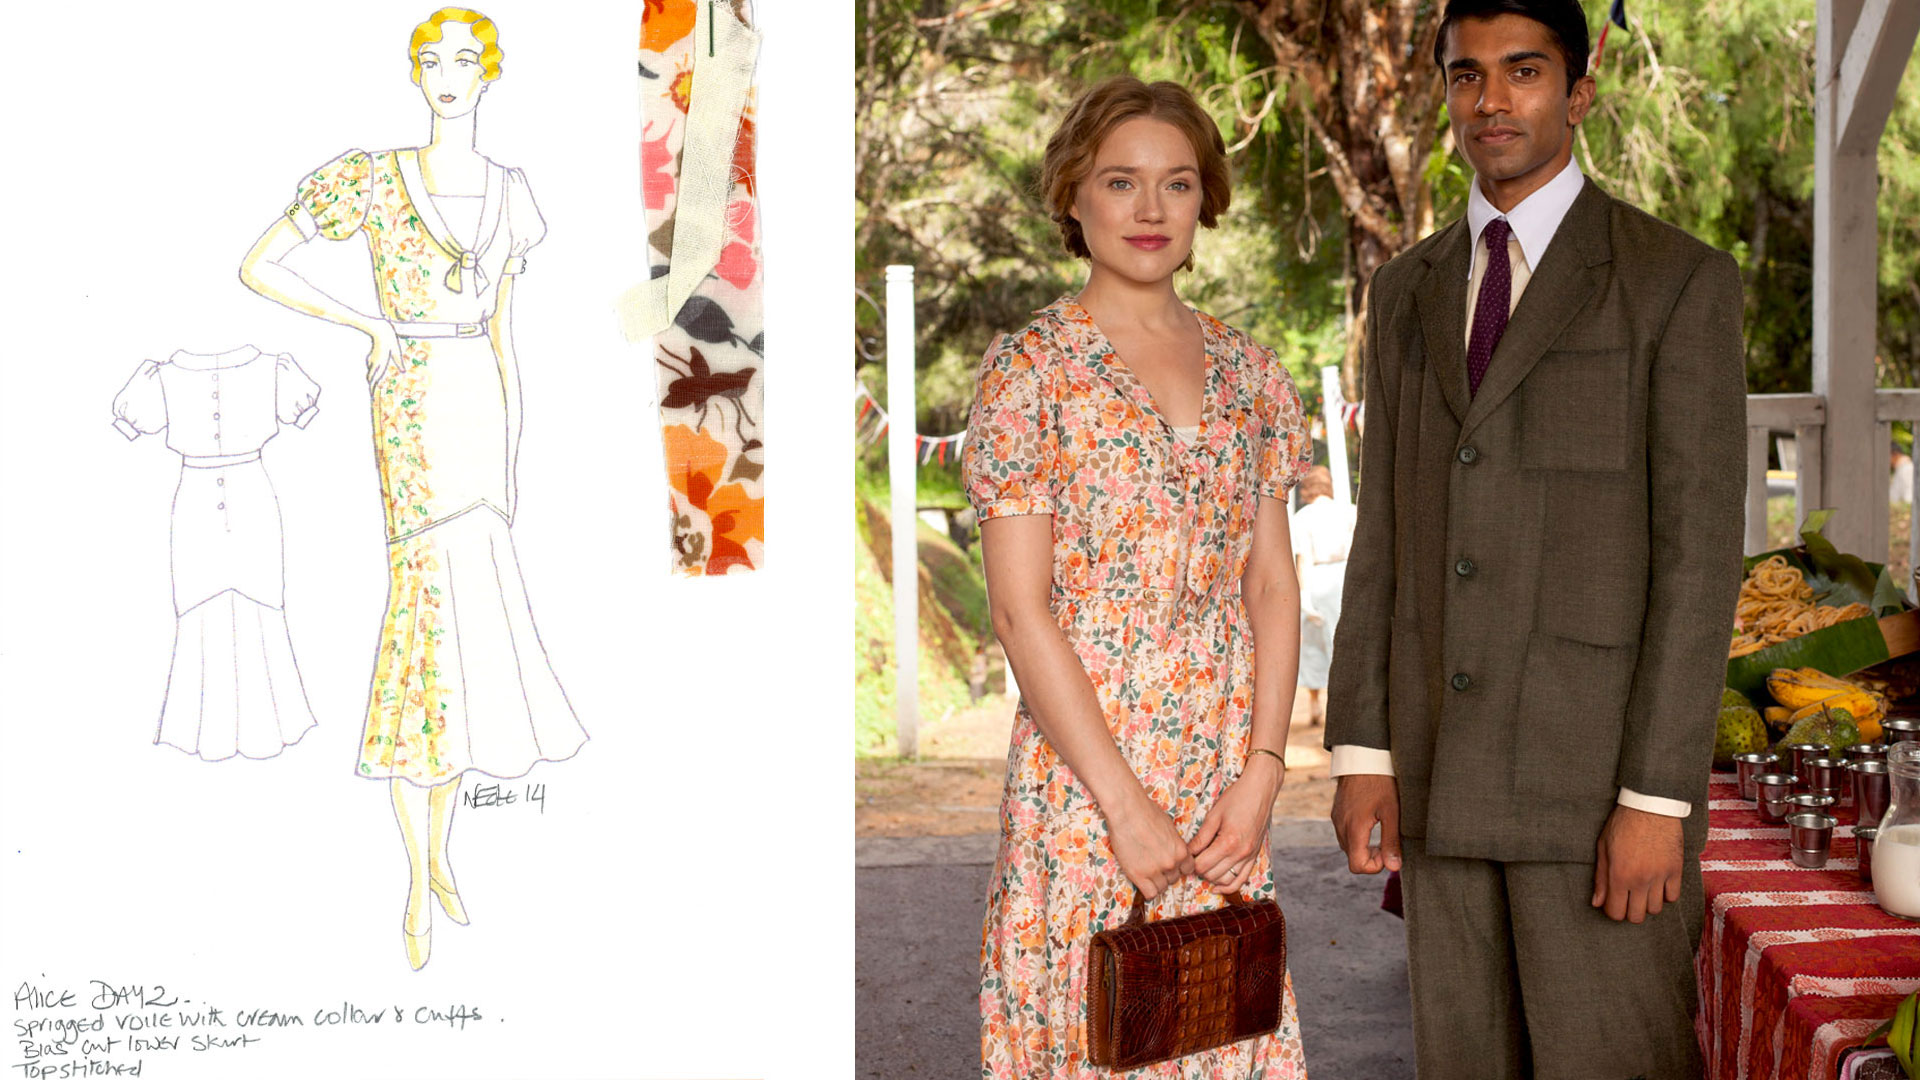 Indian Summers Season 1 The Costumes of Indian Summers | Season 1 | Indian Summers | Programs | Masterpiece | Official Site | PBS  sc 1 st  PBS & Indian Summers Season 1: The Costumes of Indian Summers | Season 1 ...